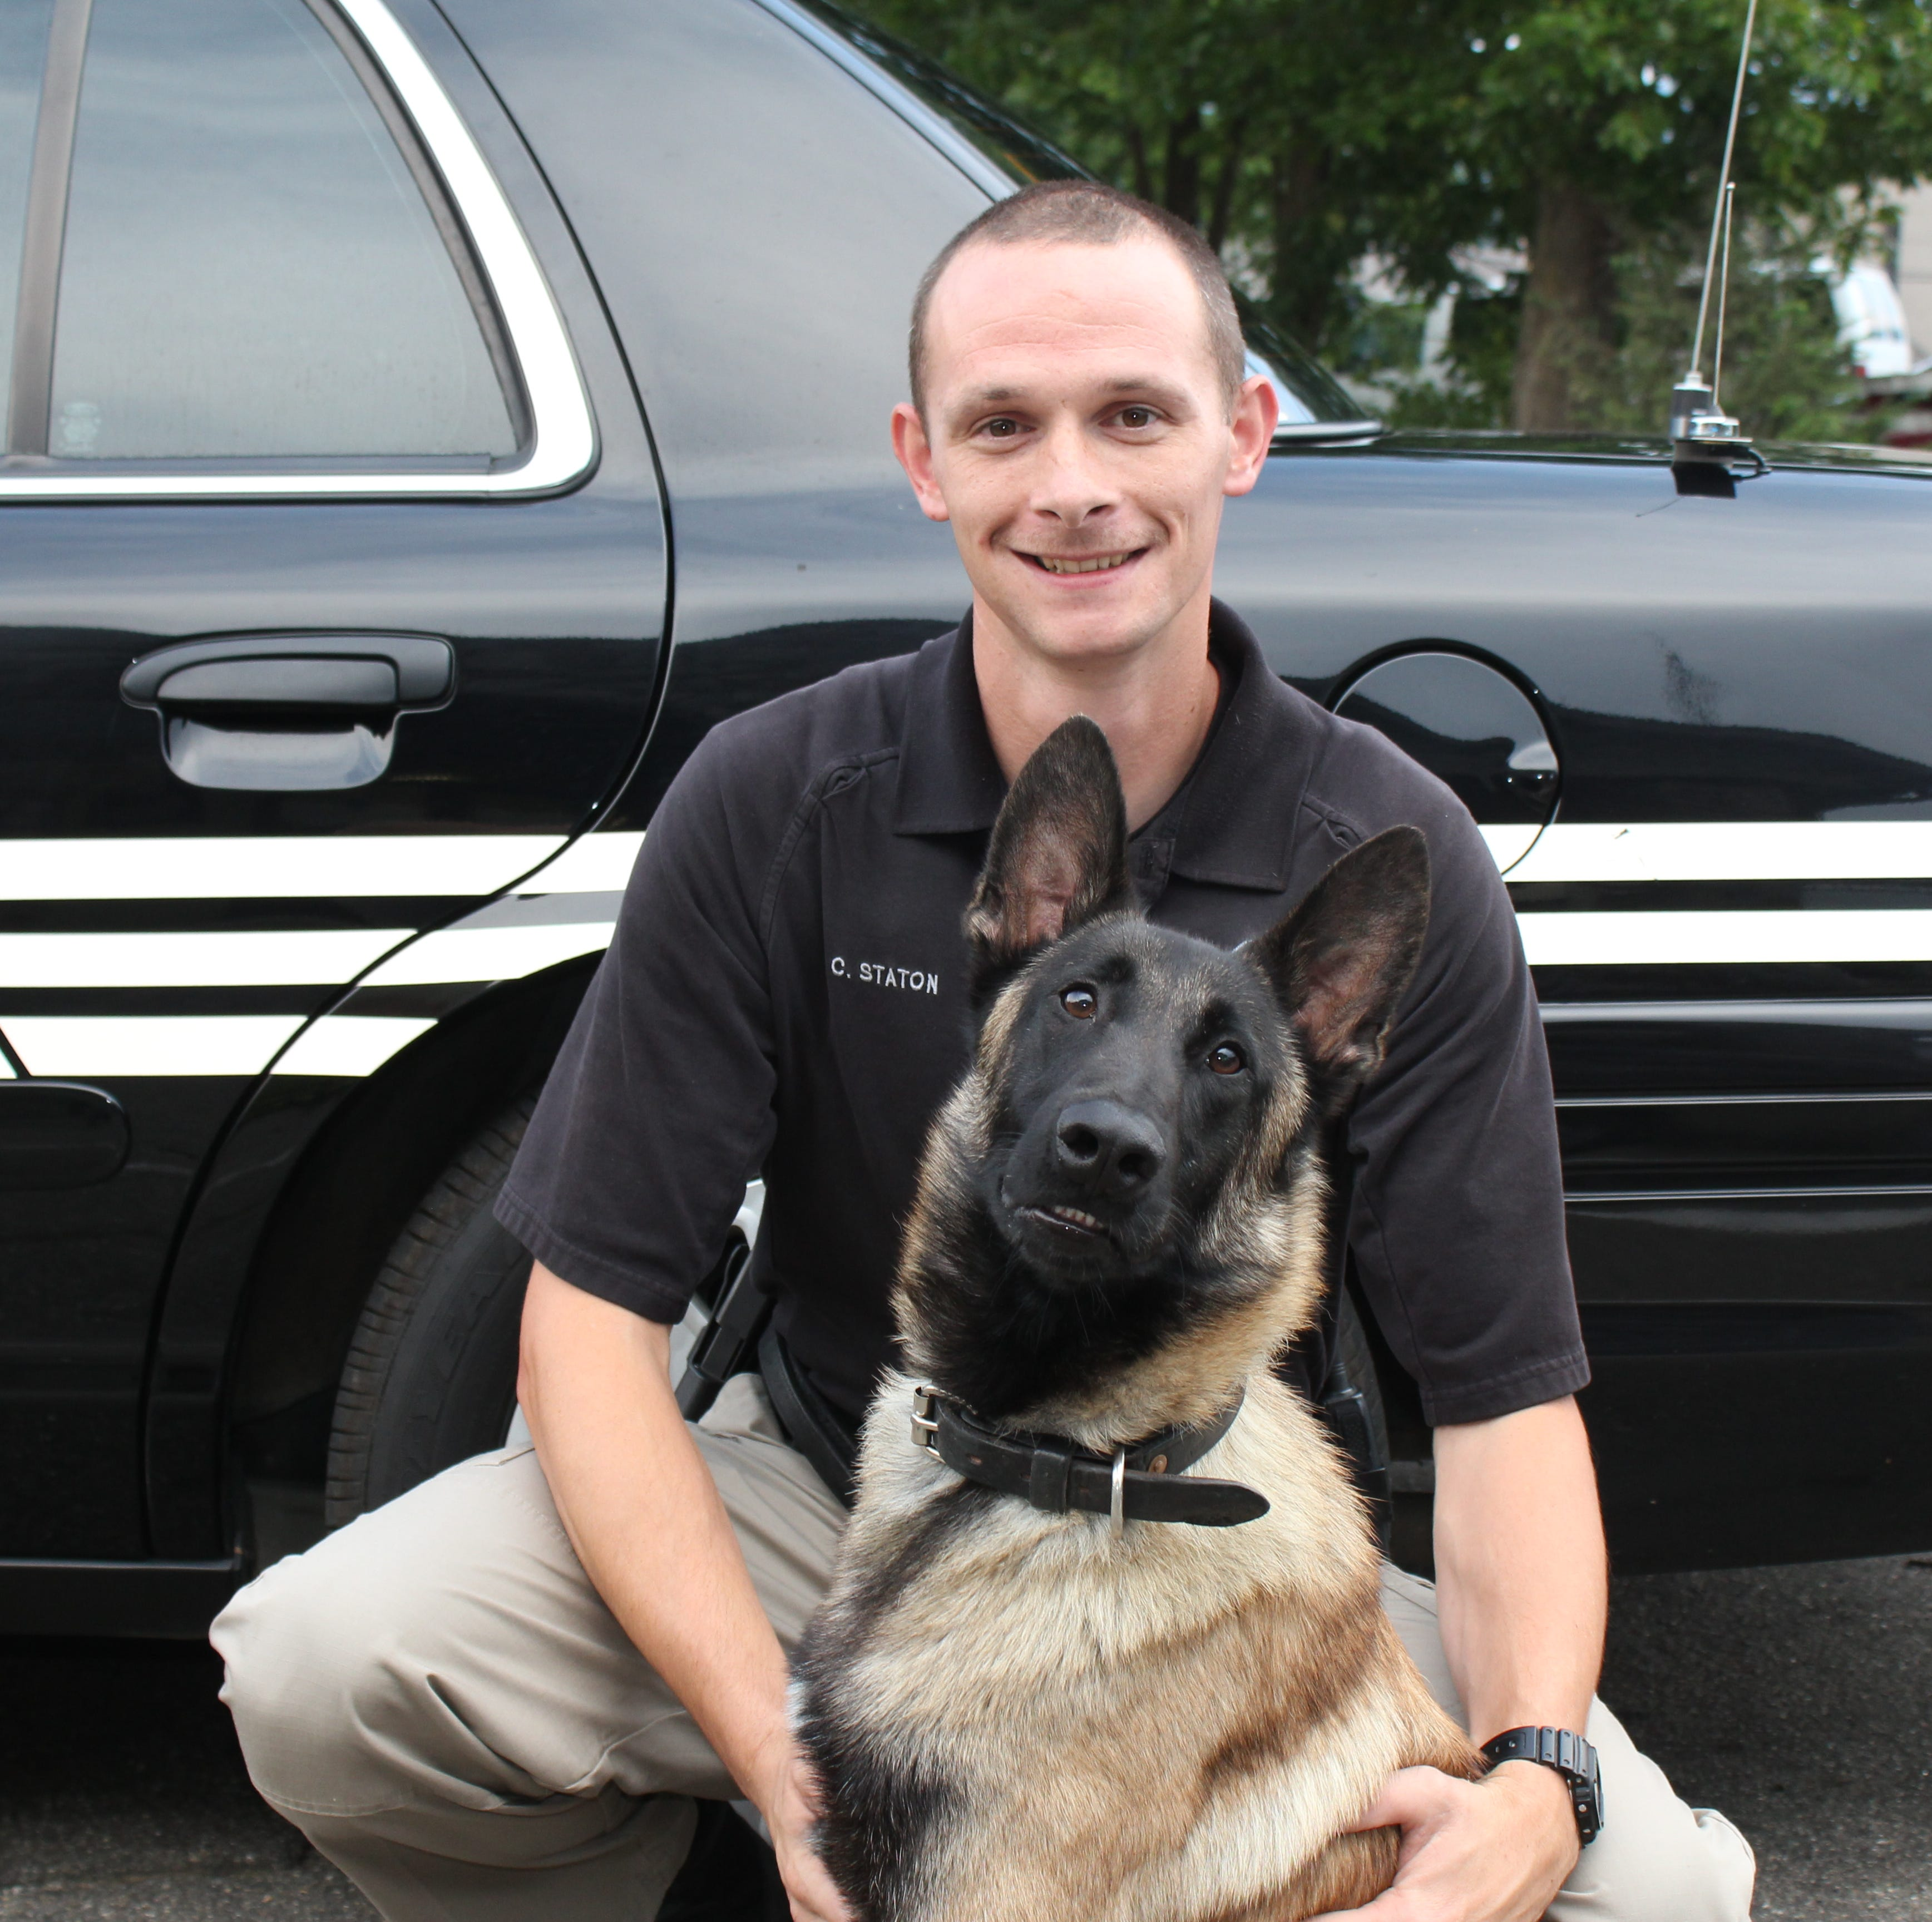 As Brisco prepares to retire, BMPD welcomes Cayman to the force